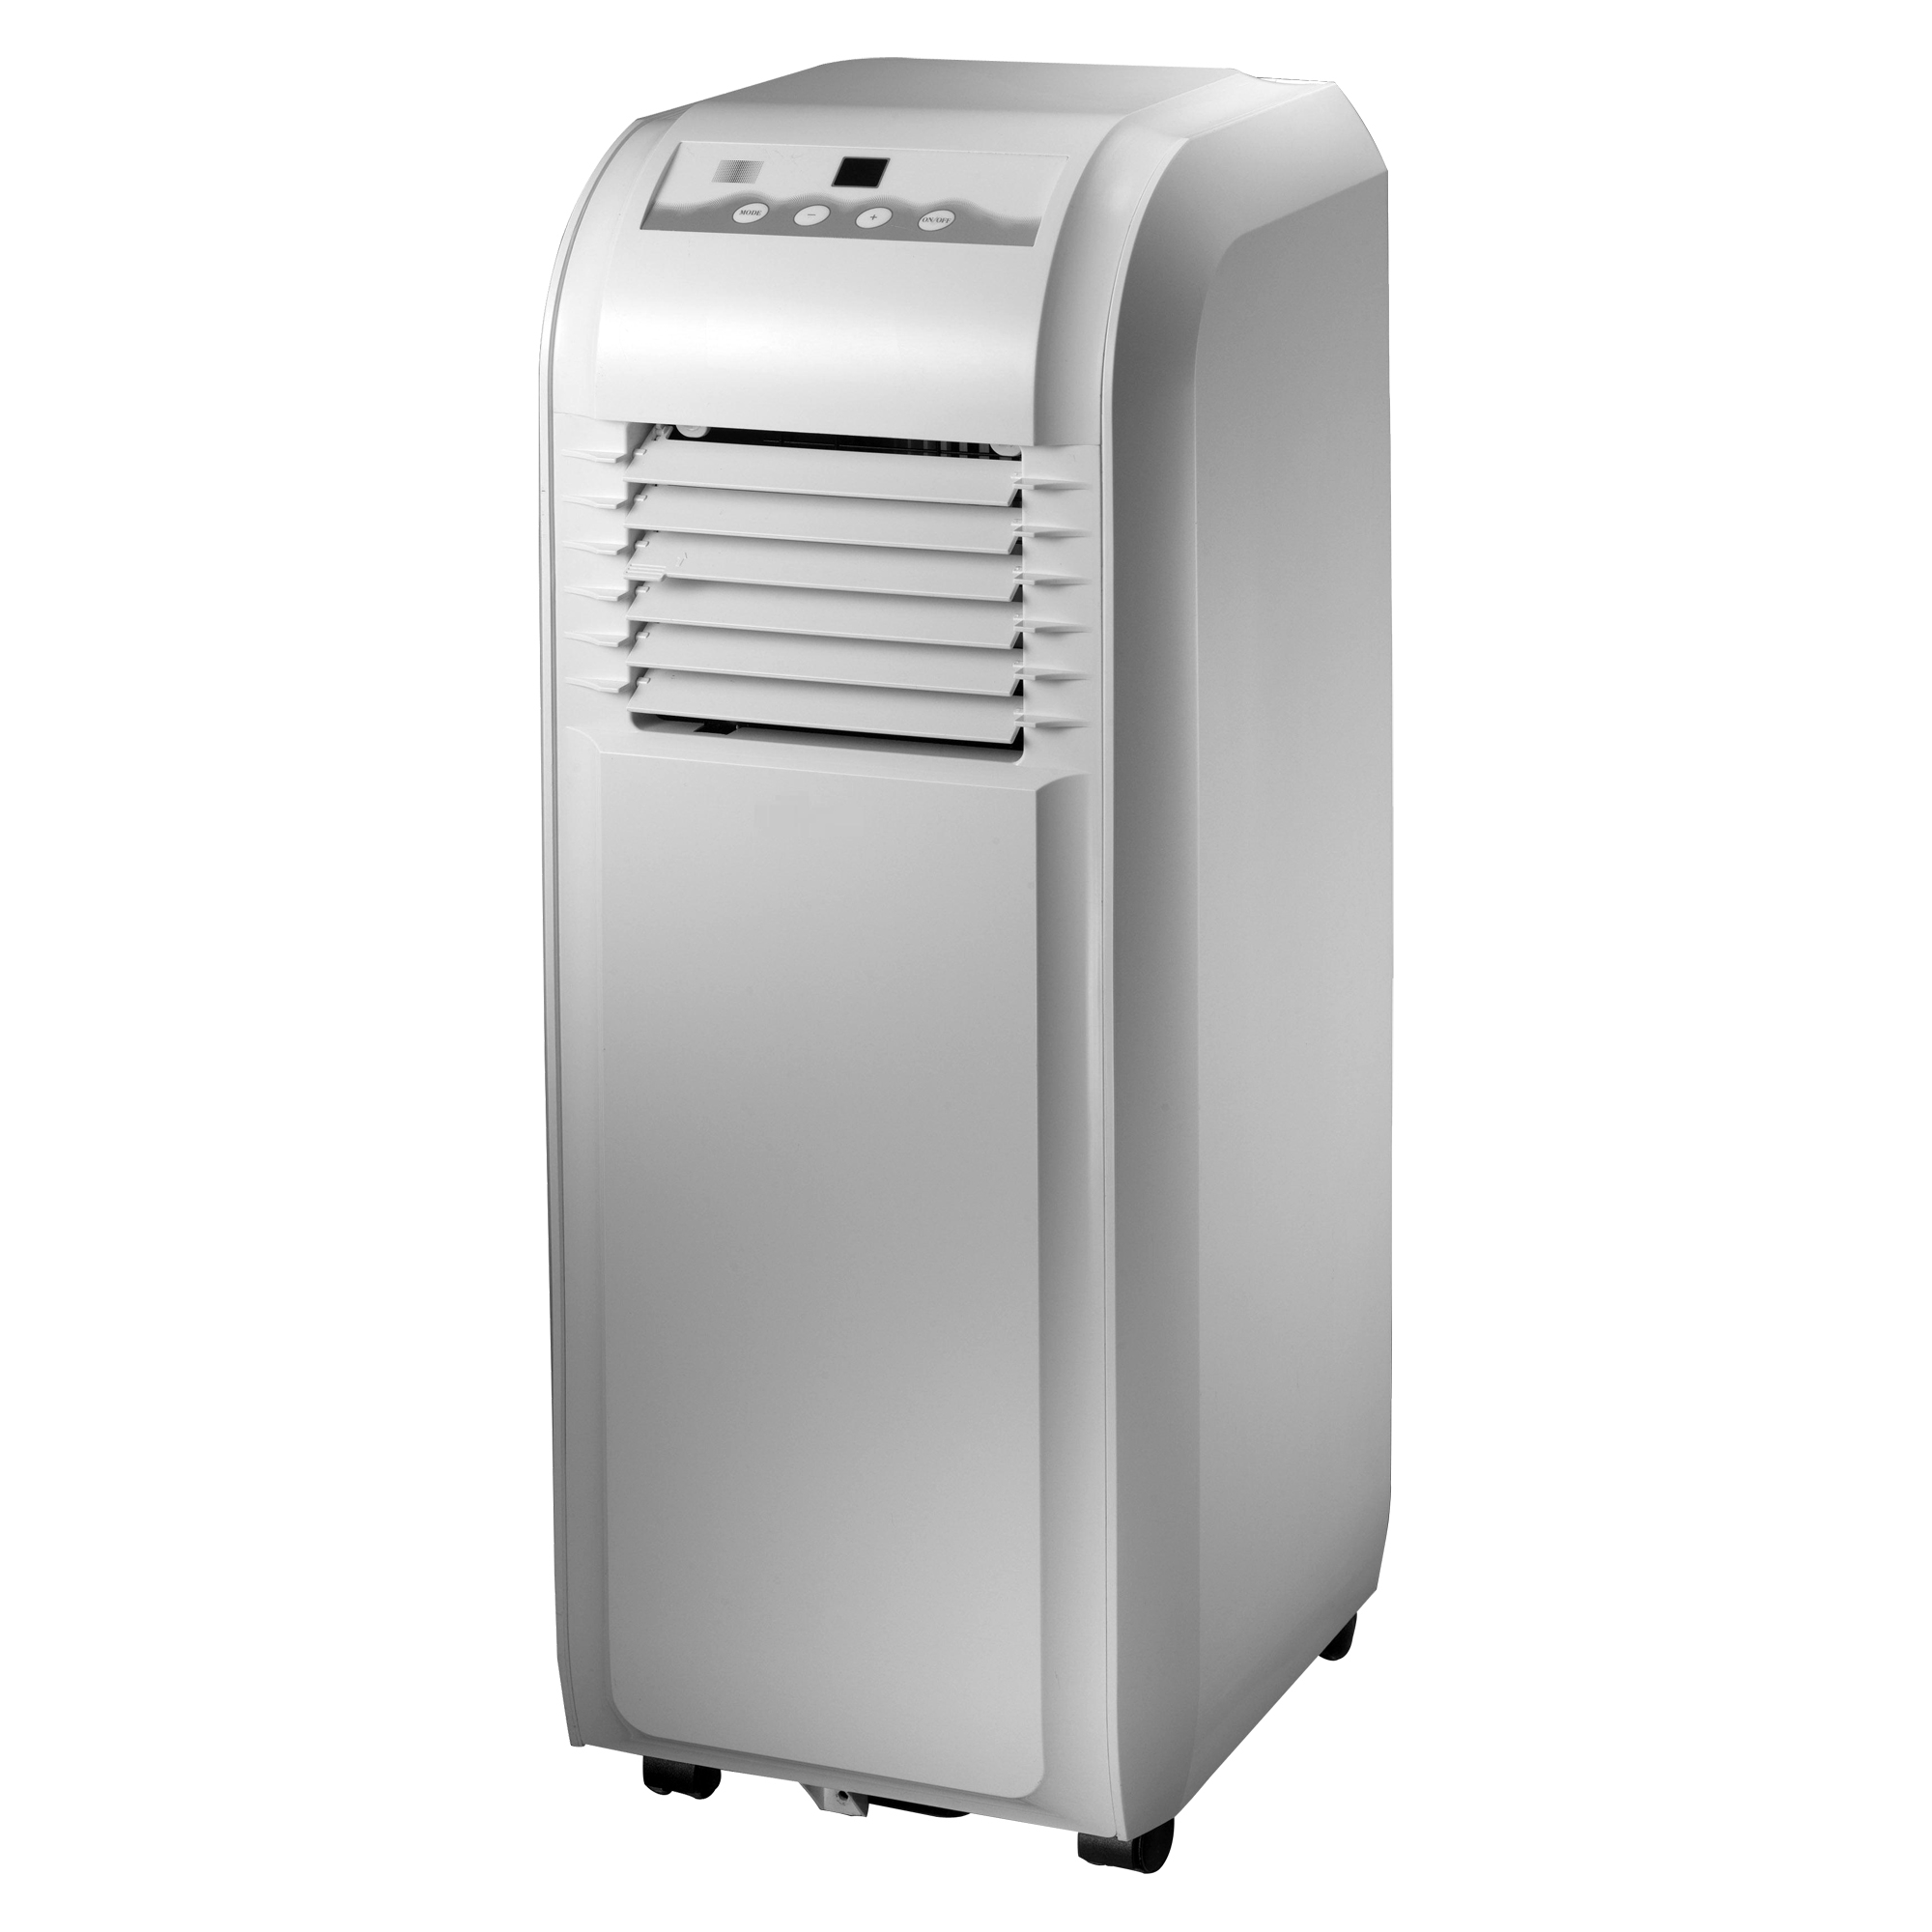 about IMPECCA 8 000 BTU/h Low Profile Portable Room Air Conditioner #1D1D1D